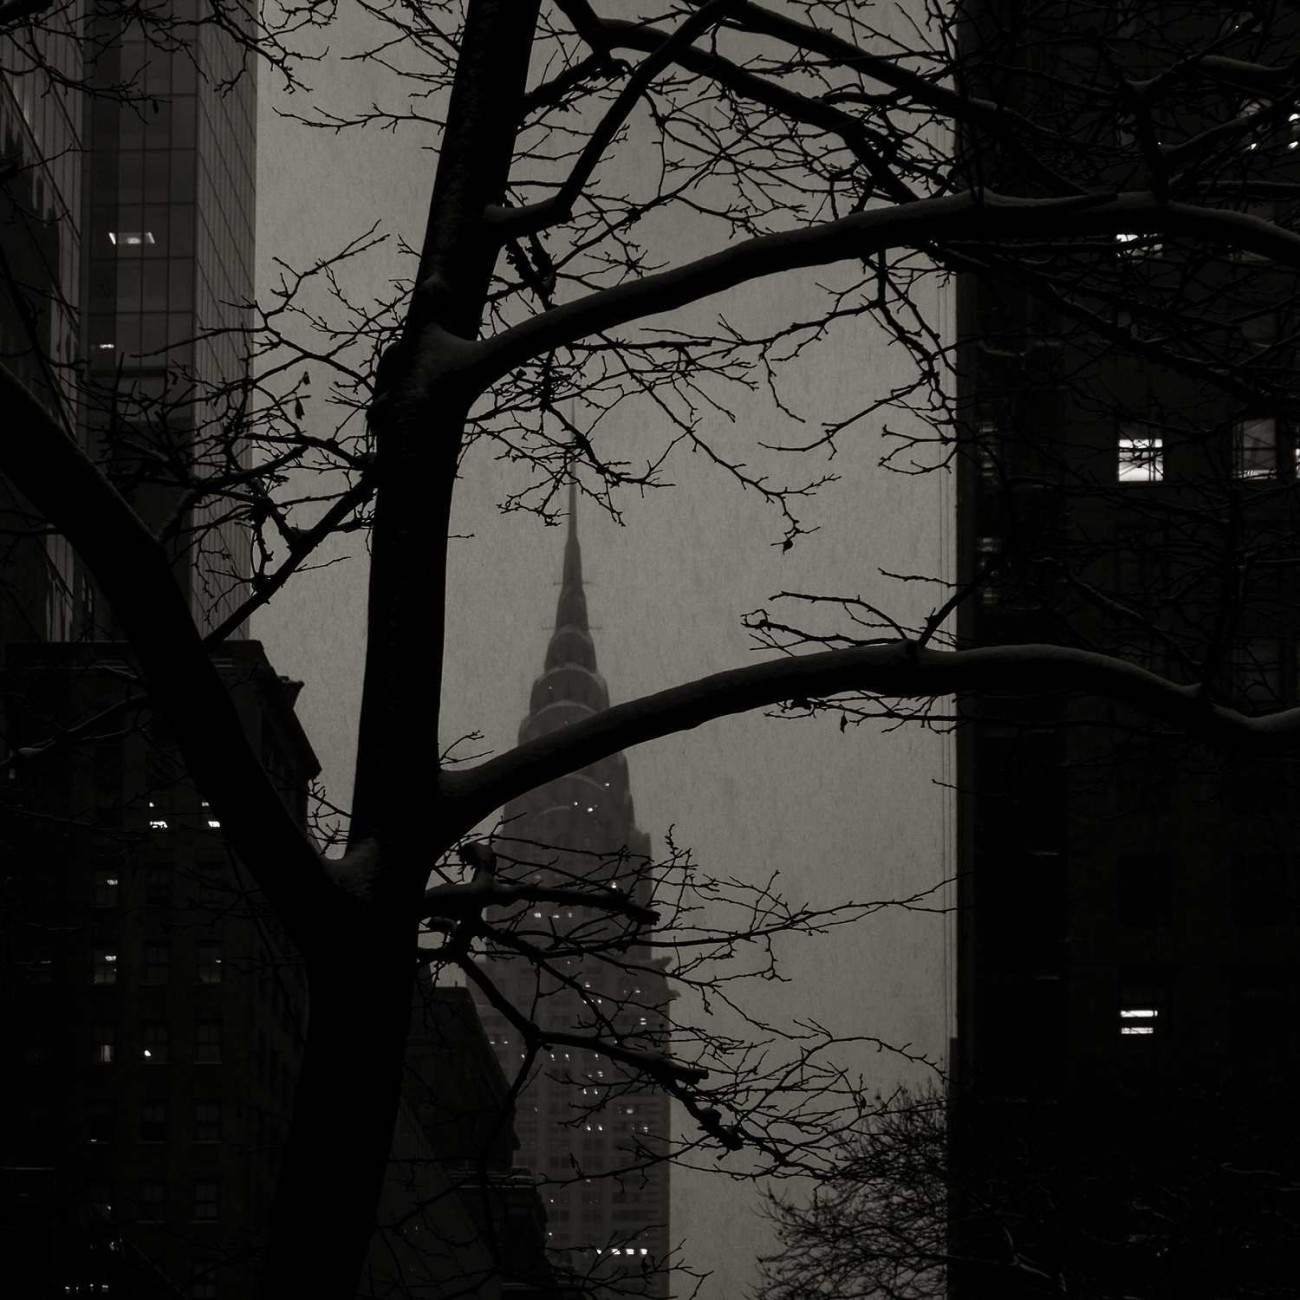 Chrysler Building at dusk with falling snow, New York, 2015